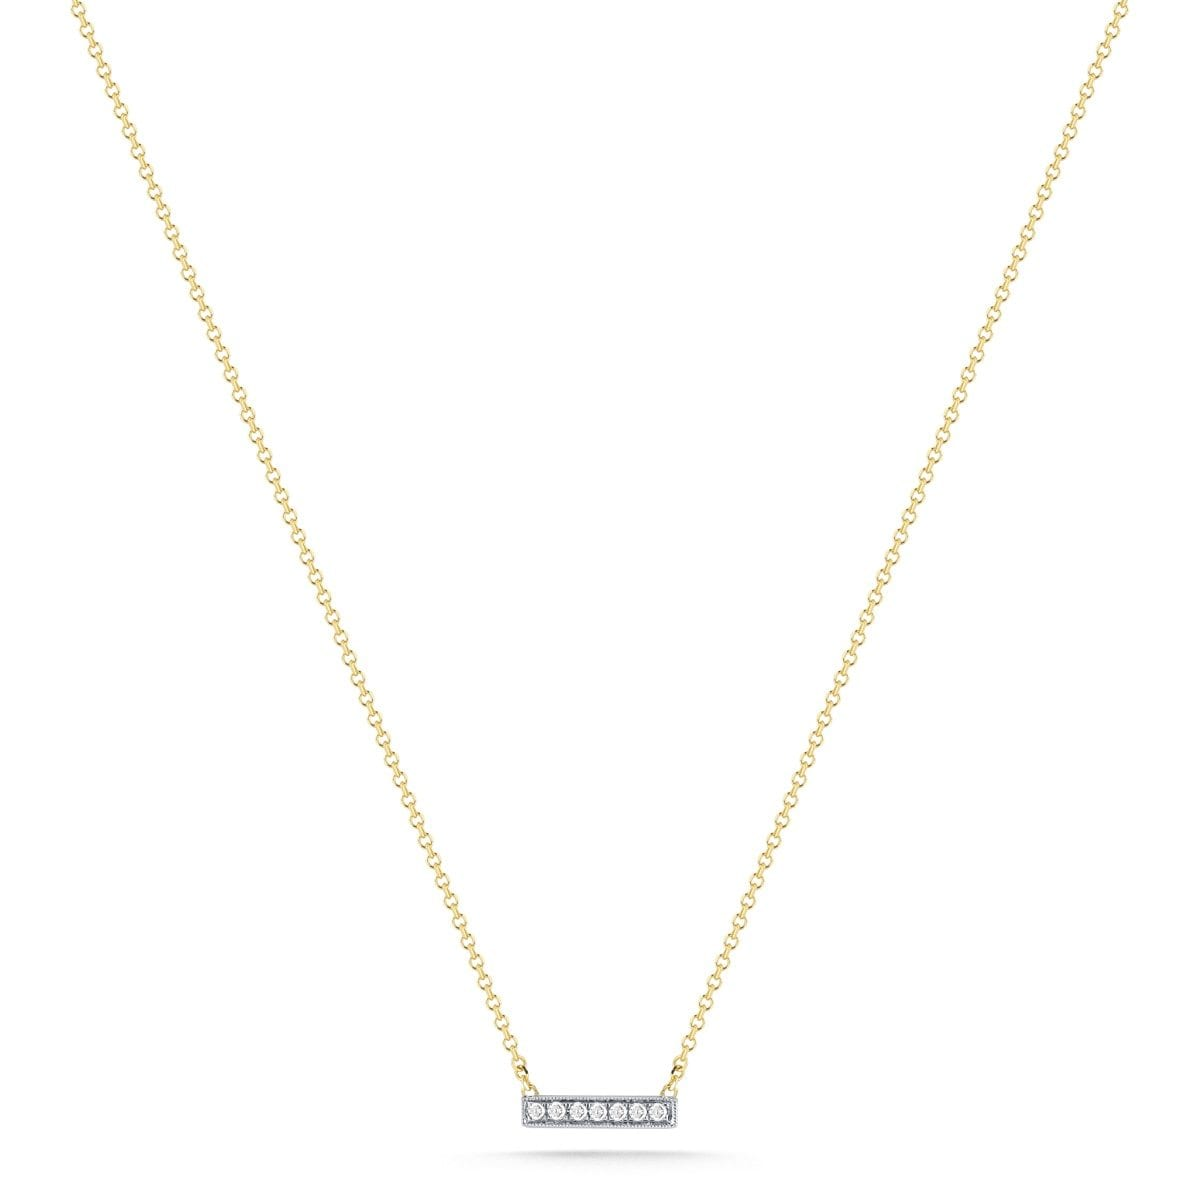 Vincents Fine Jewelry | Dana Rebecca | Sylvie Rose Mini Bar Necklace